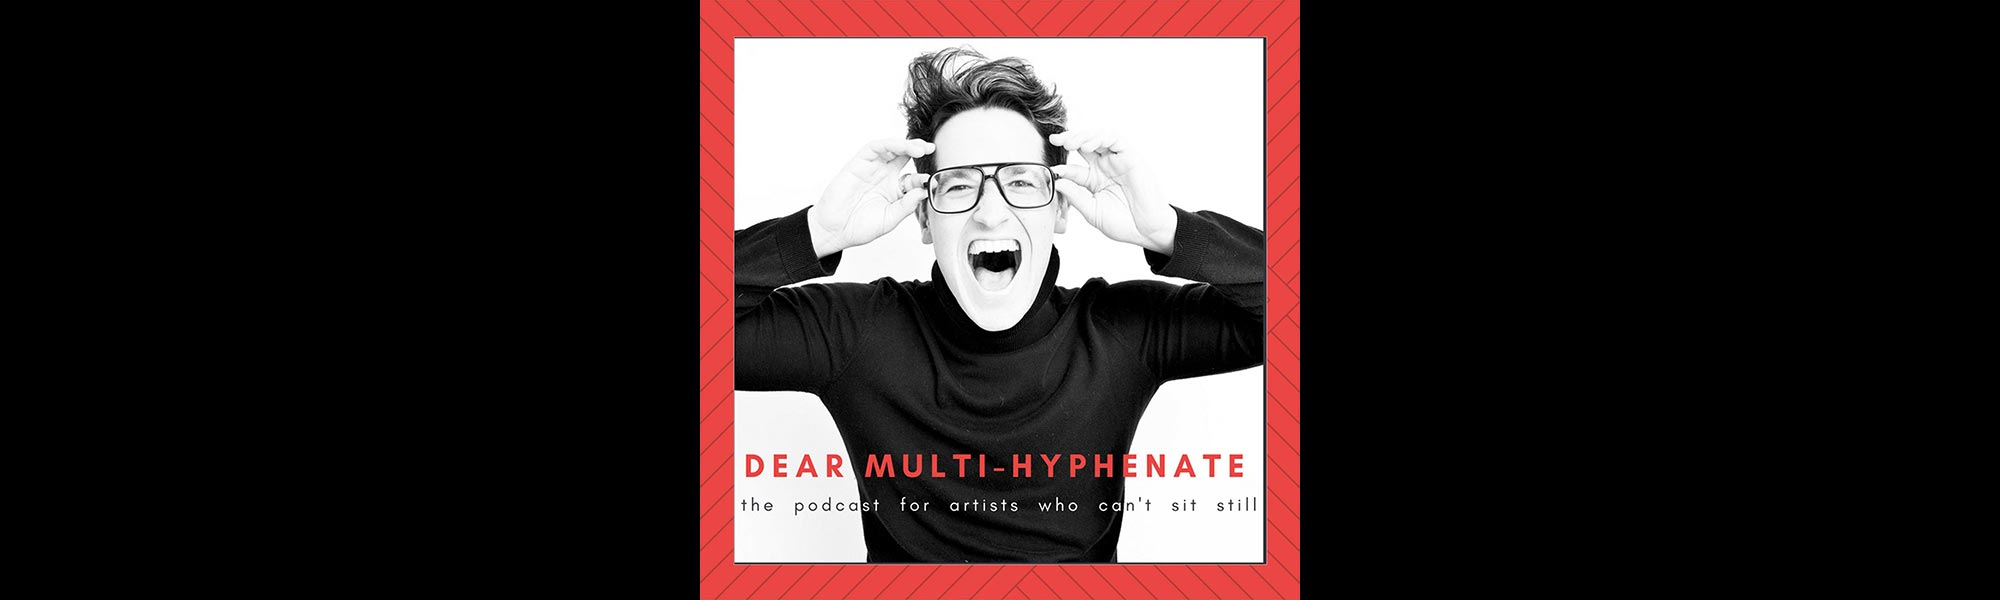 Dear Multi-Hyphenate Podcast